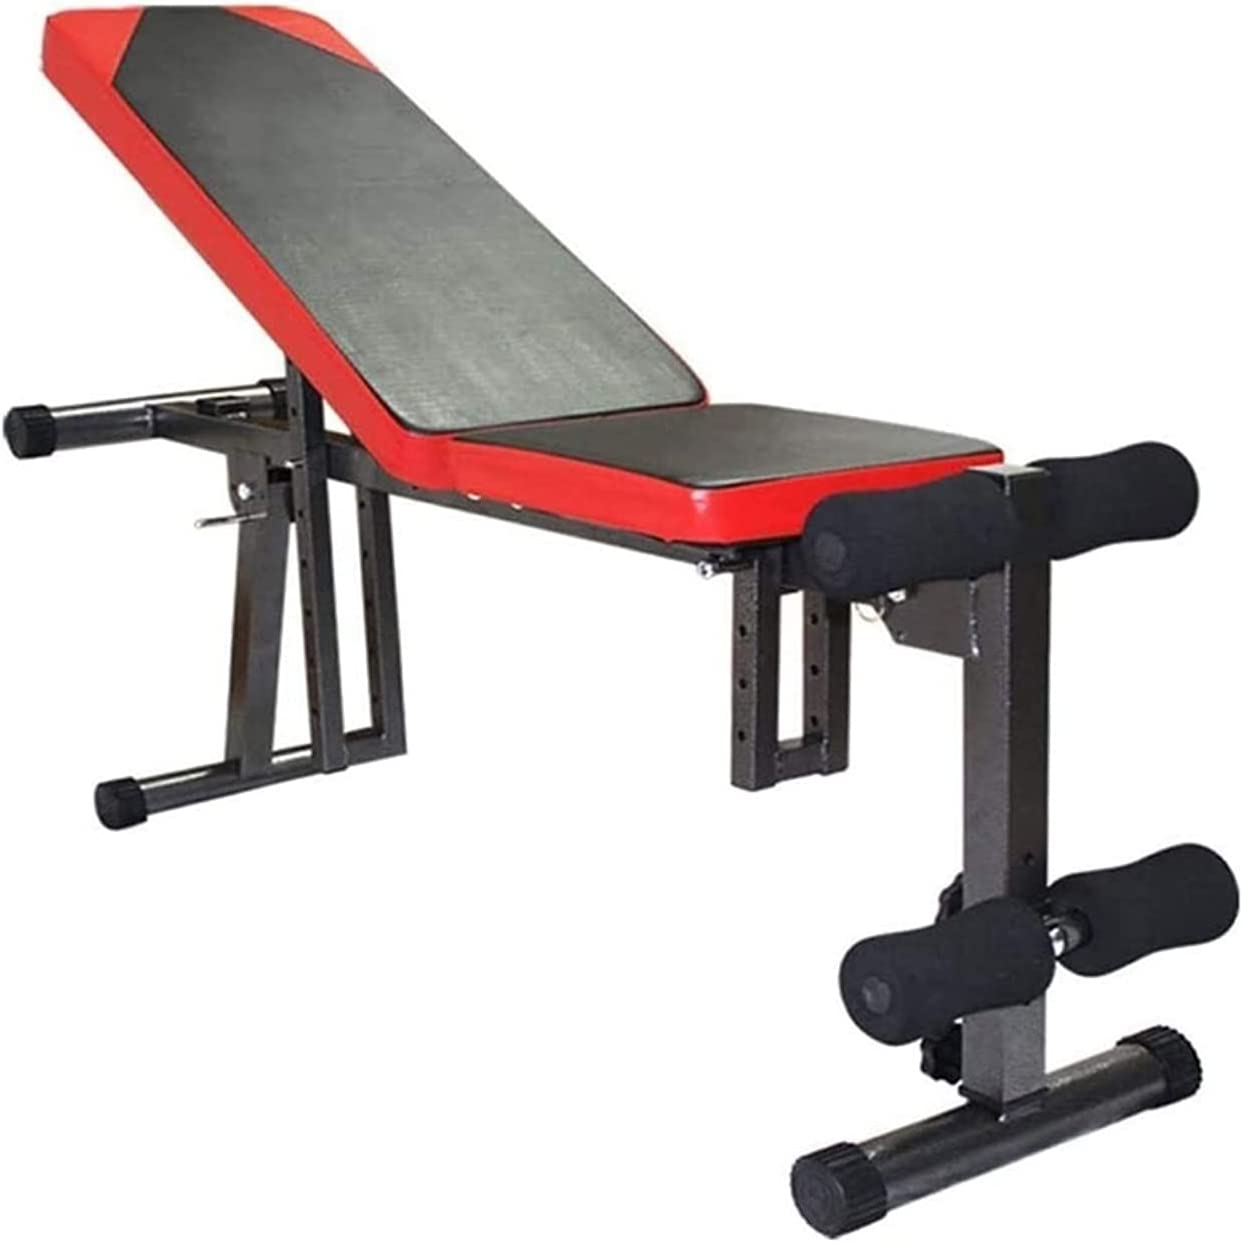 SFLRW Adjustable Weight Bench Utility Aut Foldable Up Max 72% OFF Sit Quality inspection